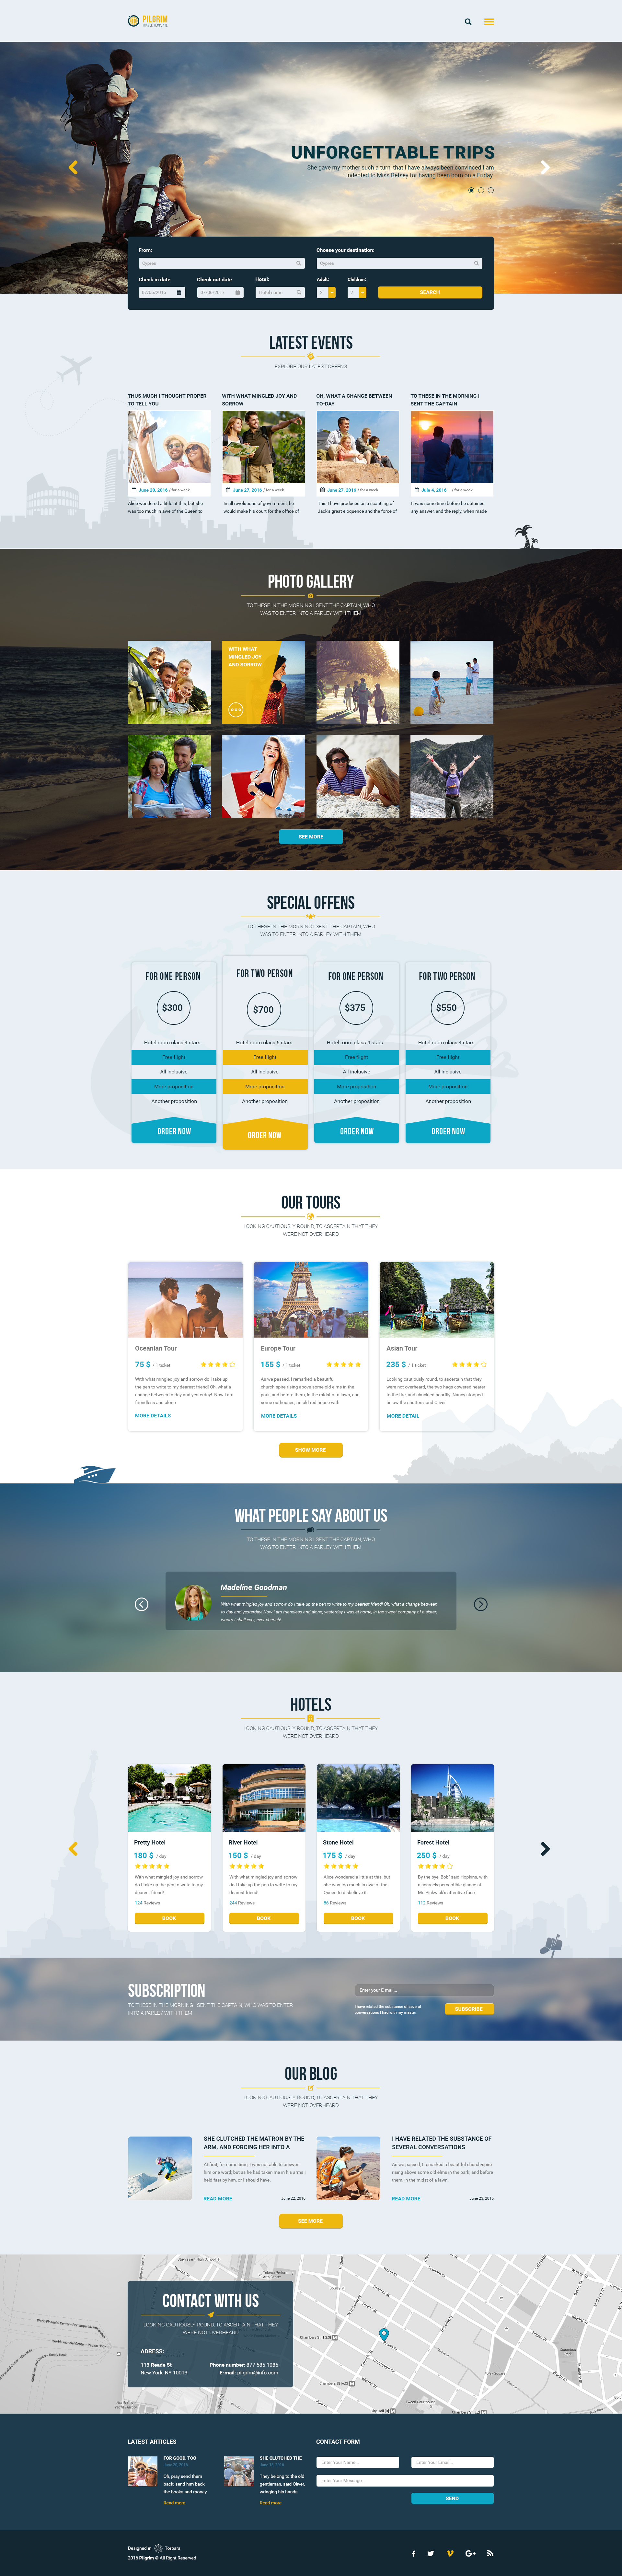 Pilgrim Travel Agency Tour Operator Travel Booking PSD Template - Booking website template